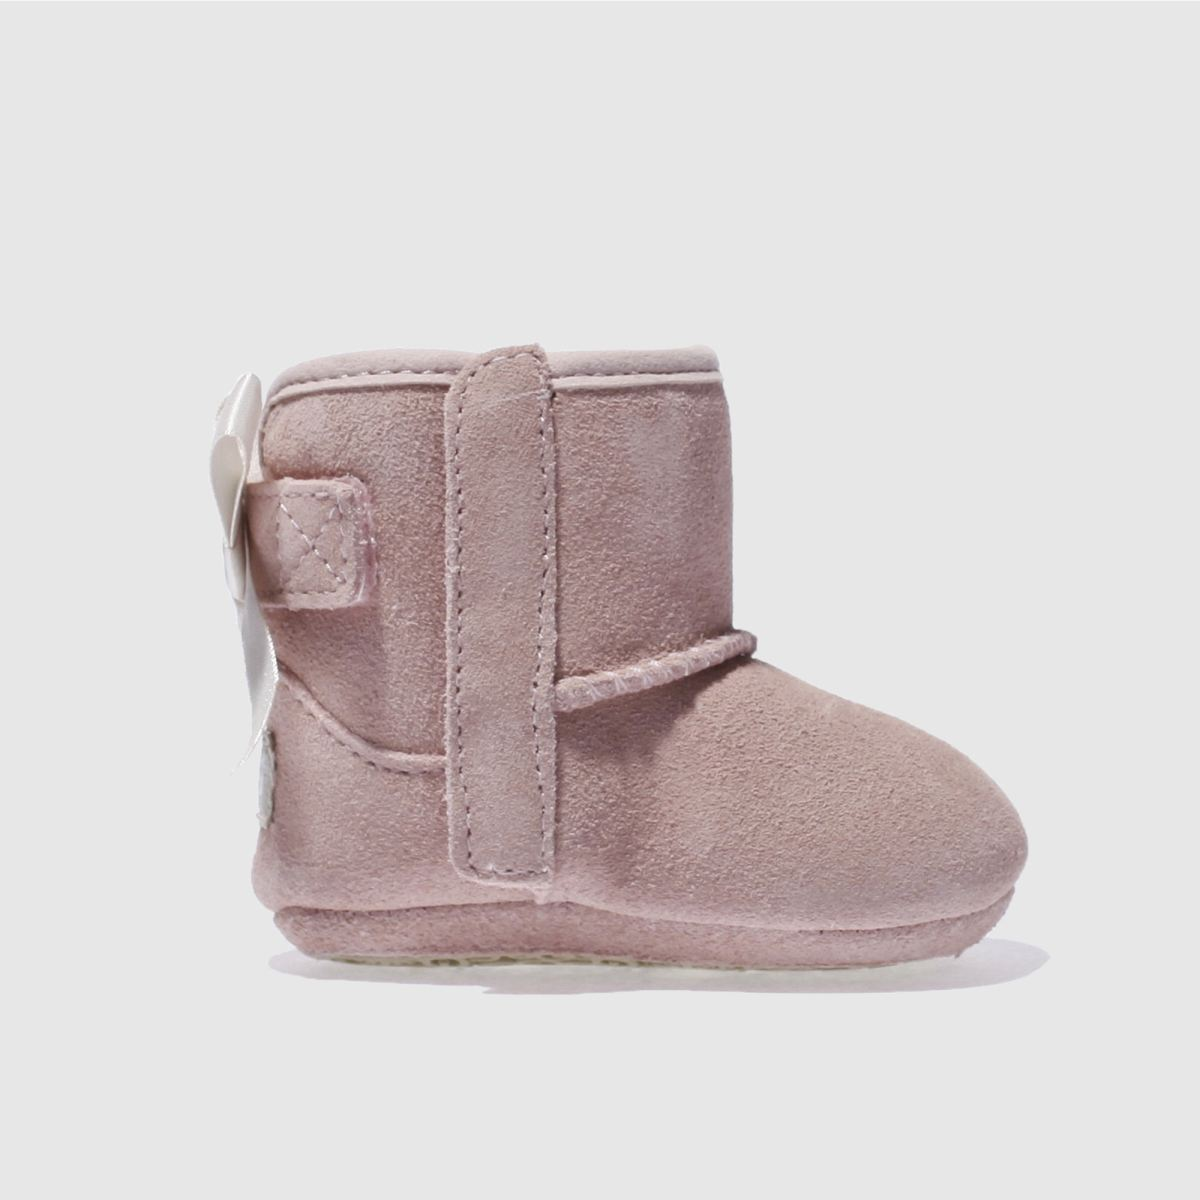 Ugg Pale Pink Jesse Bow Ii Crib Shoes Baby